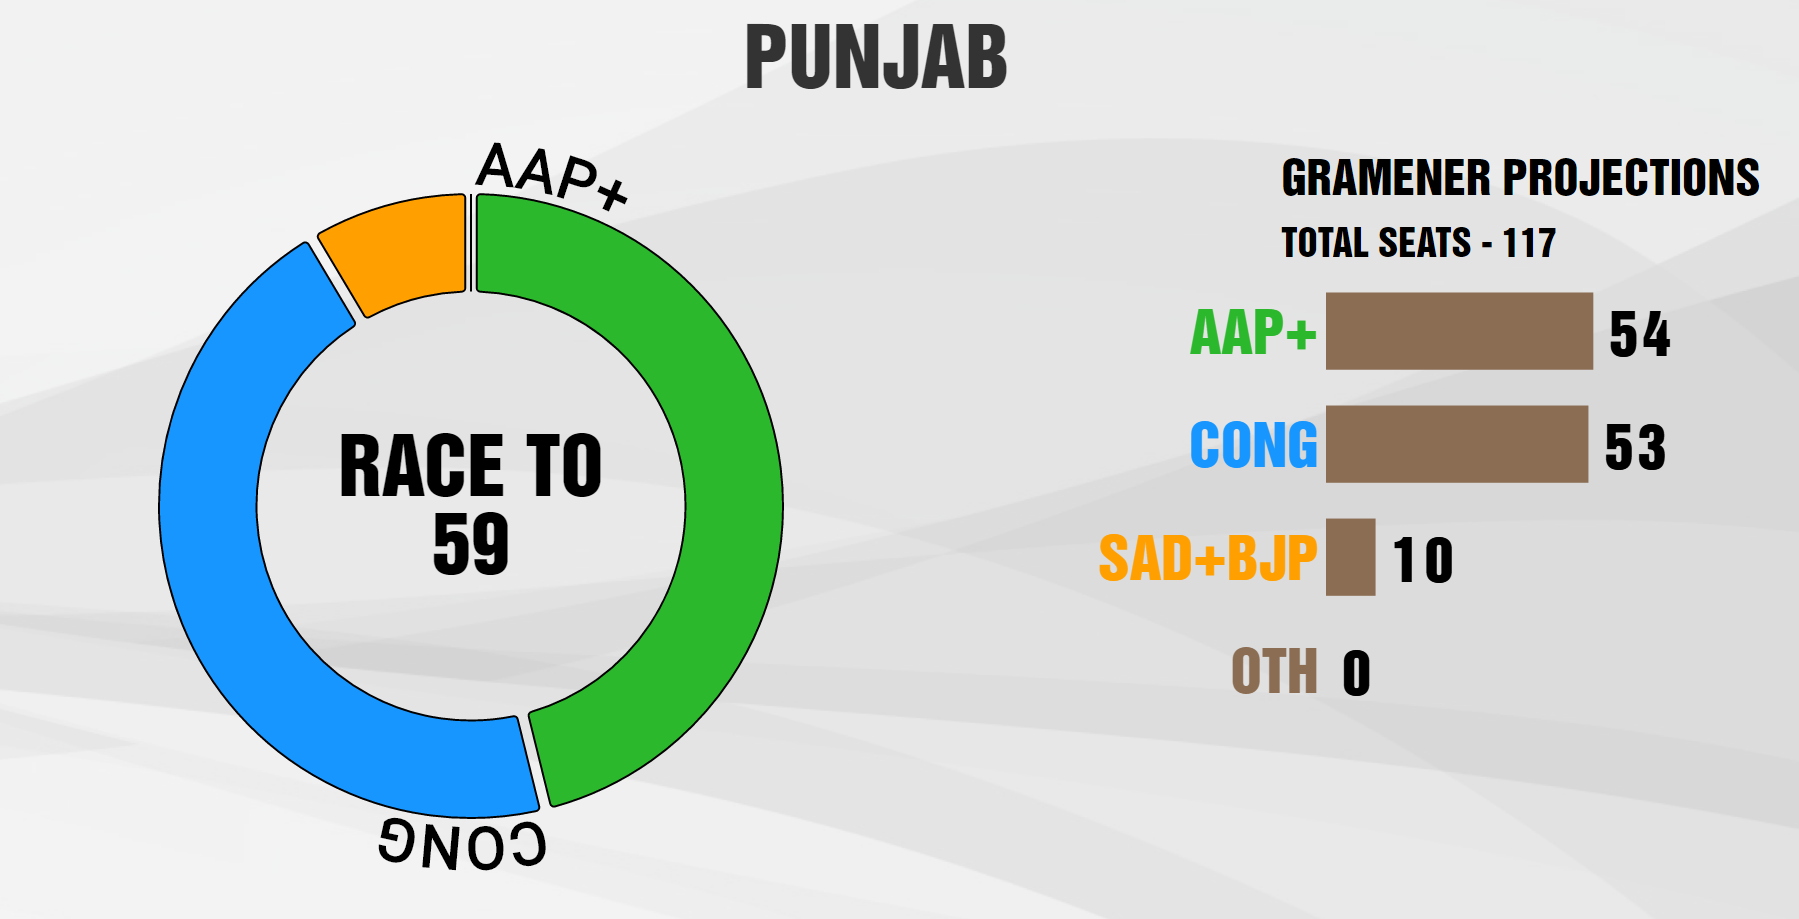 network18-gramener-projections-punjab-revised